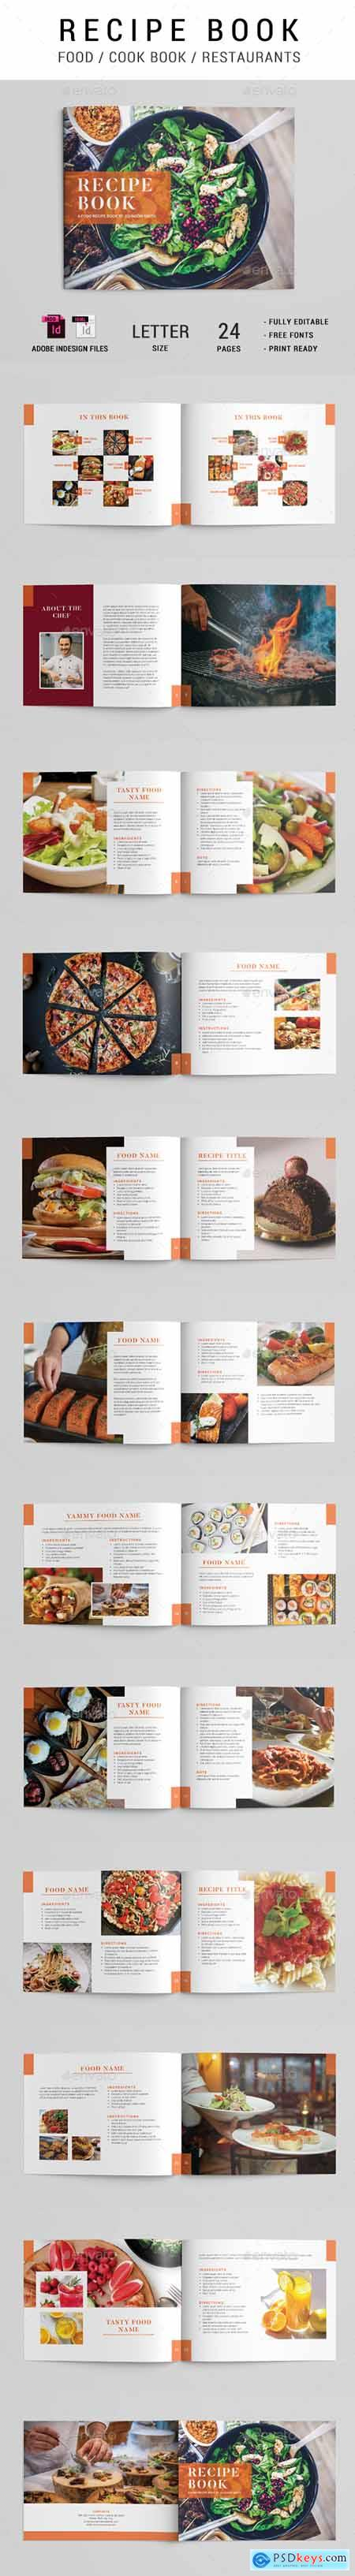 Cook Book Recipe Brochure